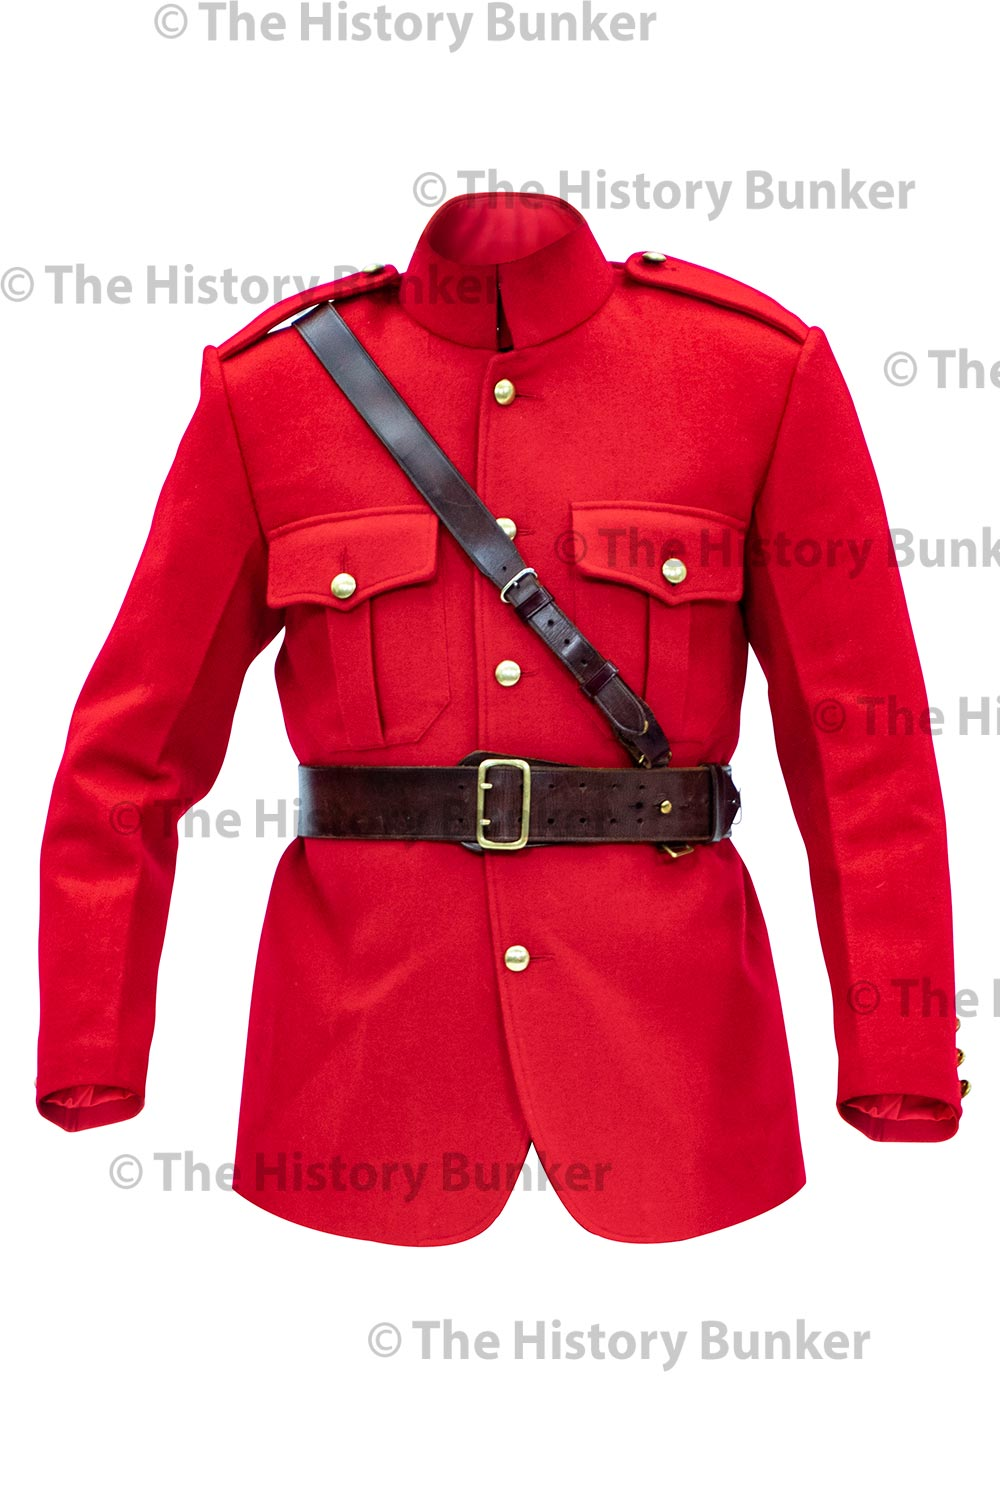 1904 Canadian North West Frontier Police tunic